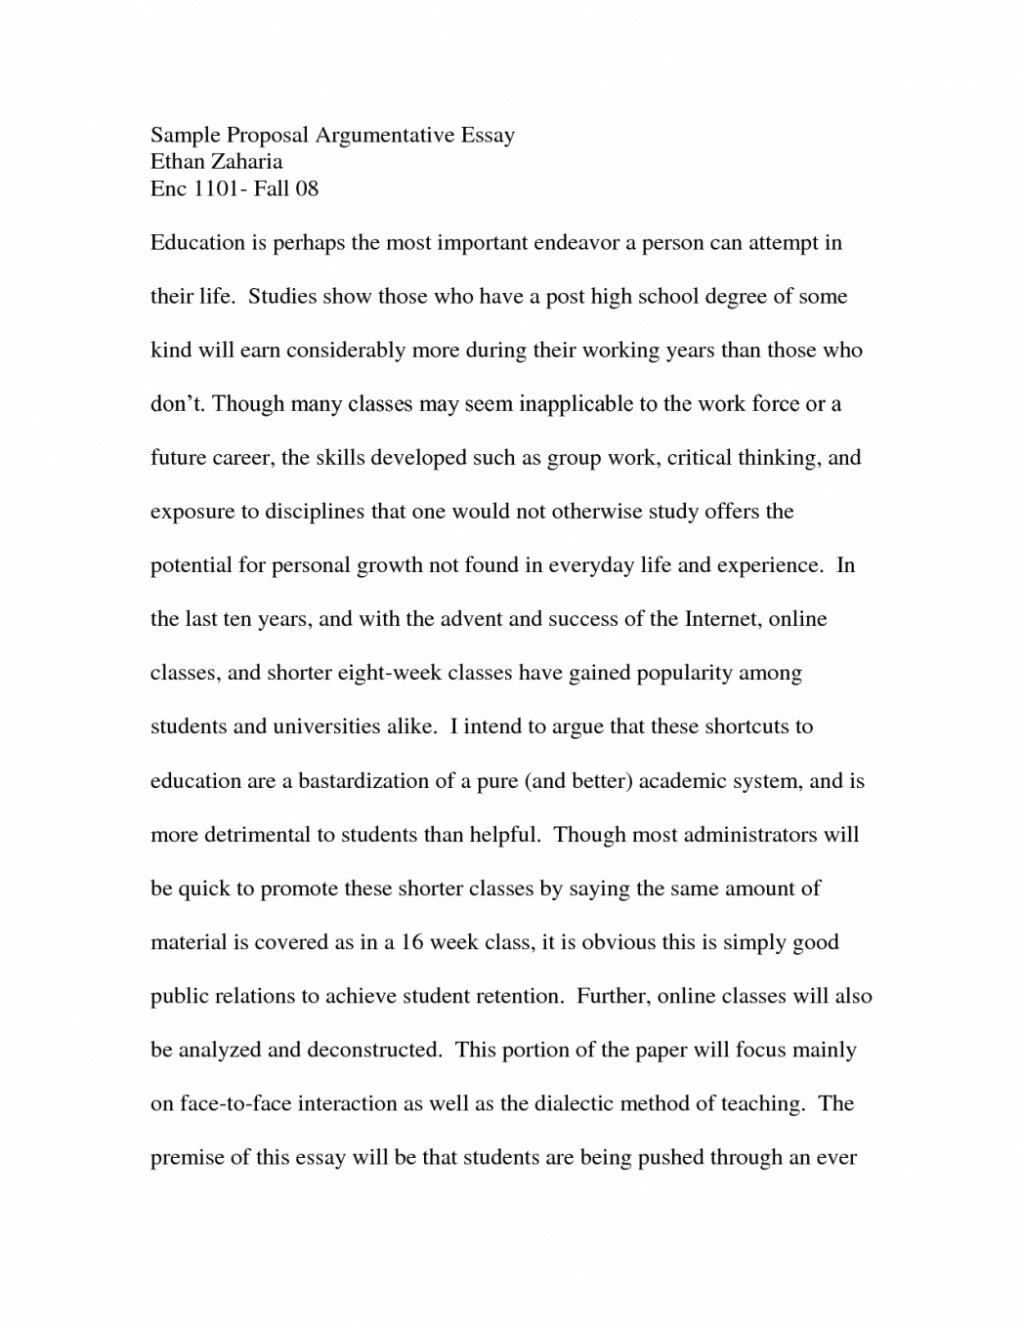 016 Informative Essay Example On Abortion High School Argumentative Conclusion Examples Argument Against Agrum Sample Dreaded Outline Template Pdf Topics For 5th Grade Rubric Fsa Large